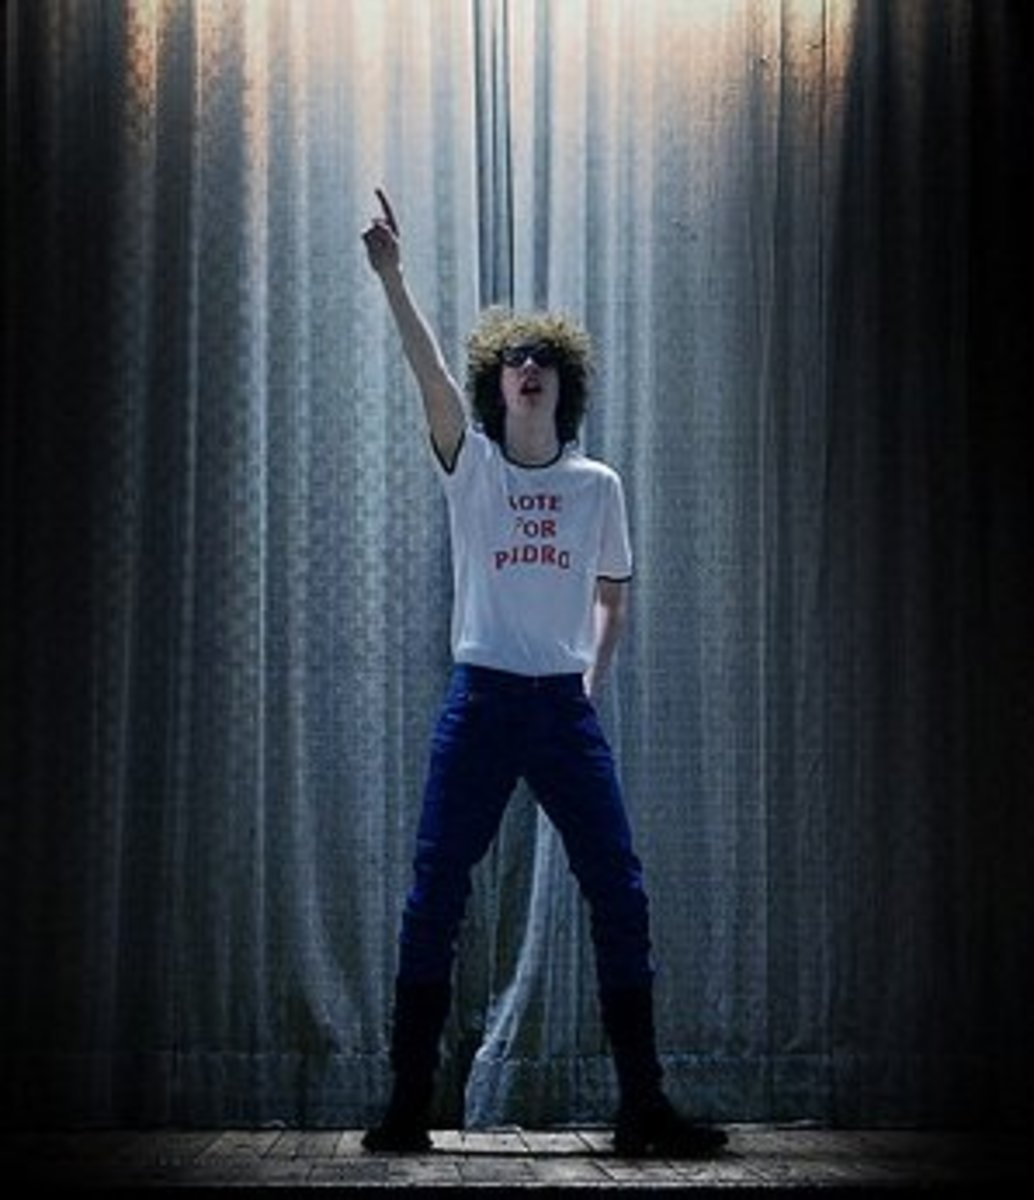 The Napoleon Dynamite dance will get the crowd cheering.